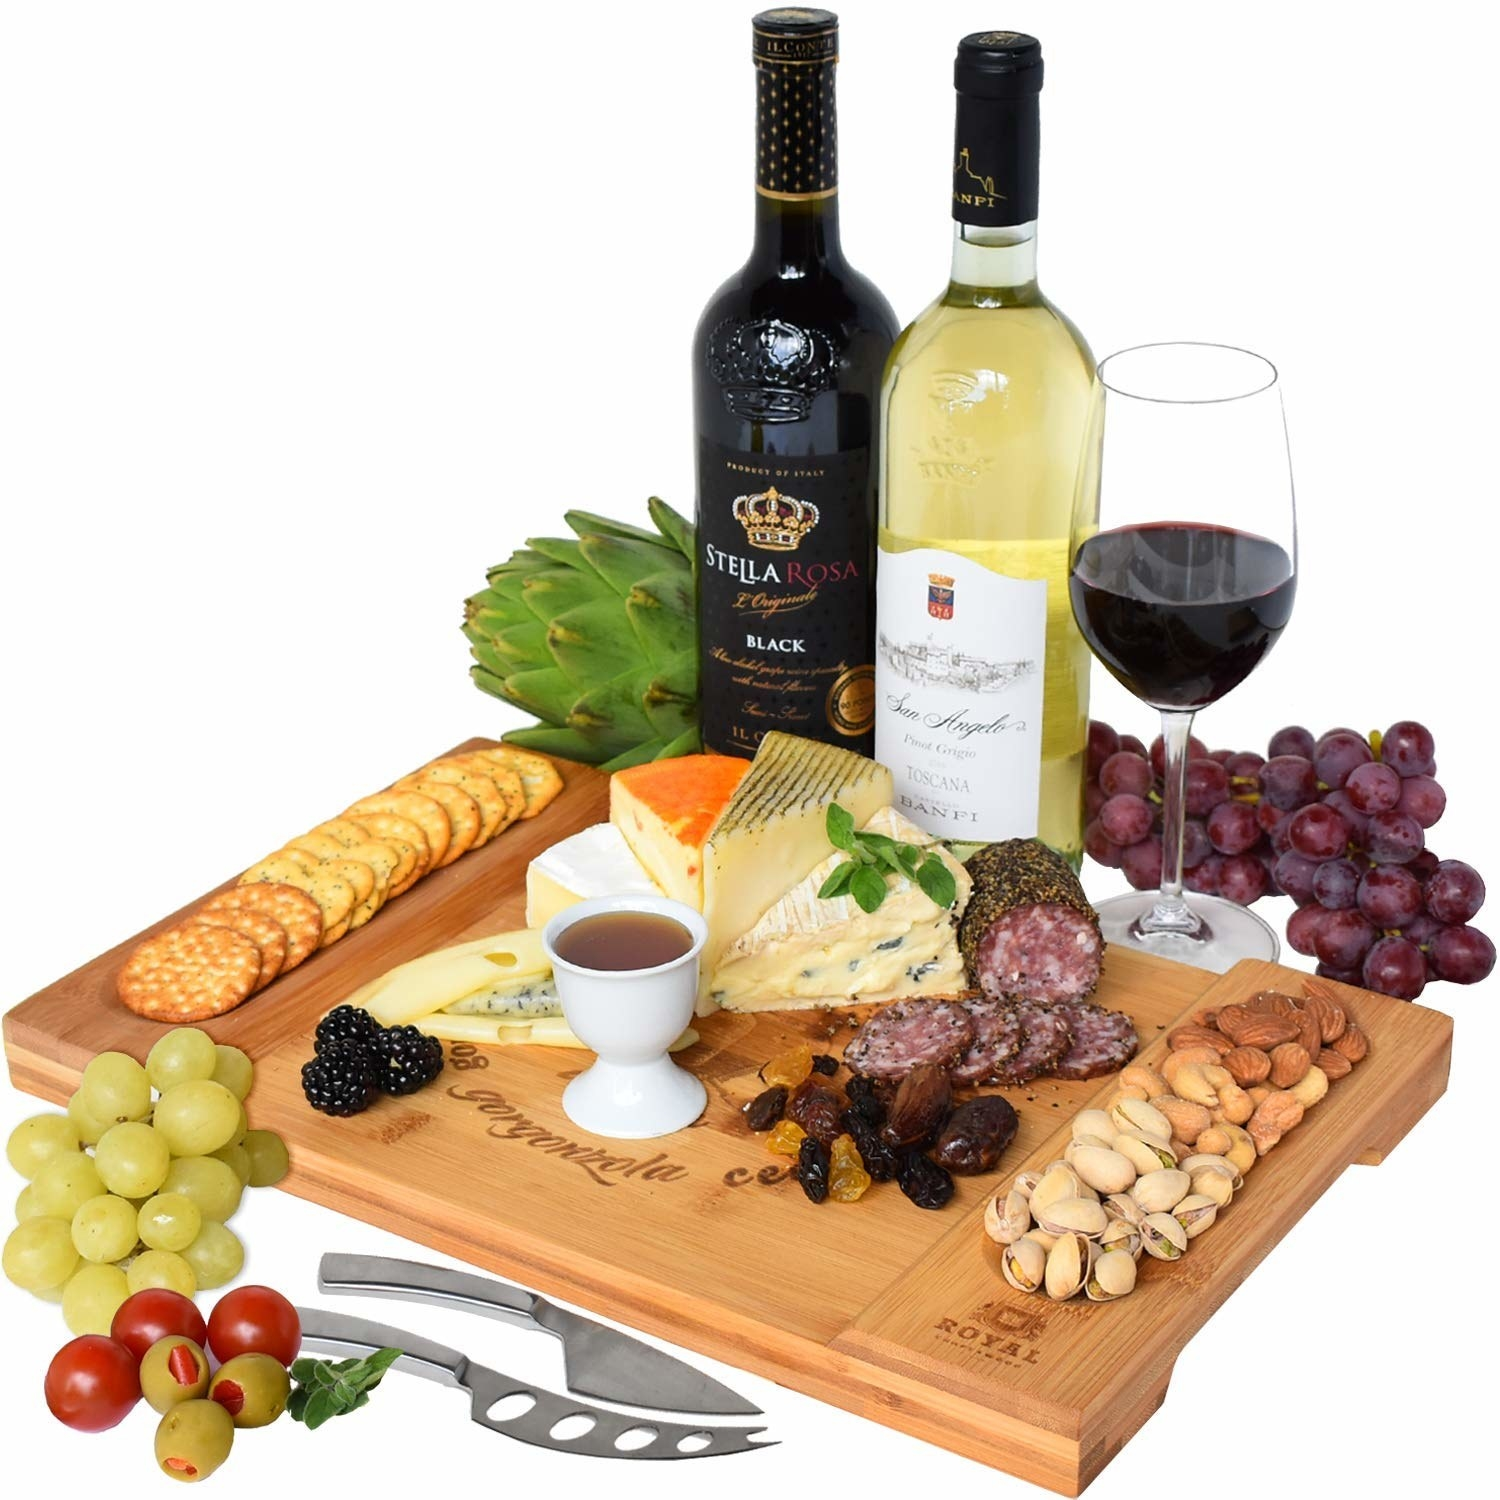 large wood cheese board full of charcuterie and crackers